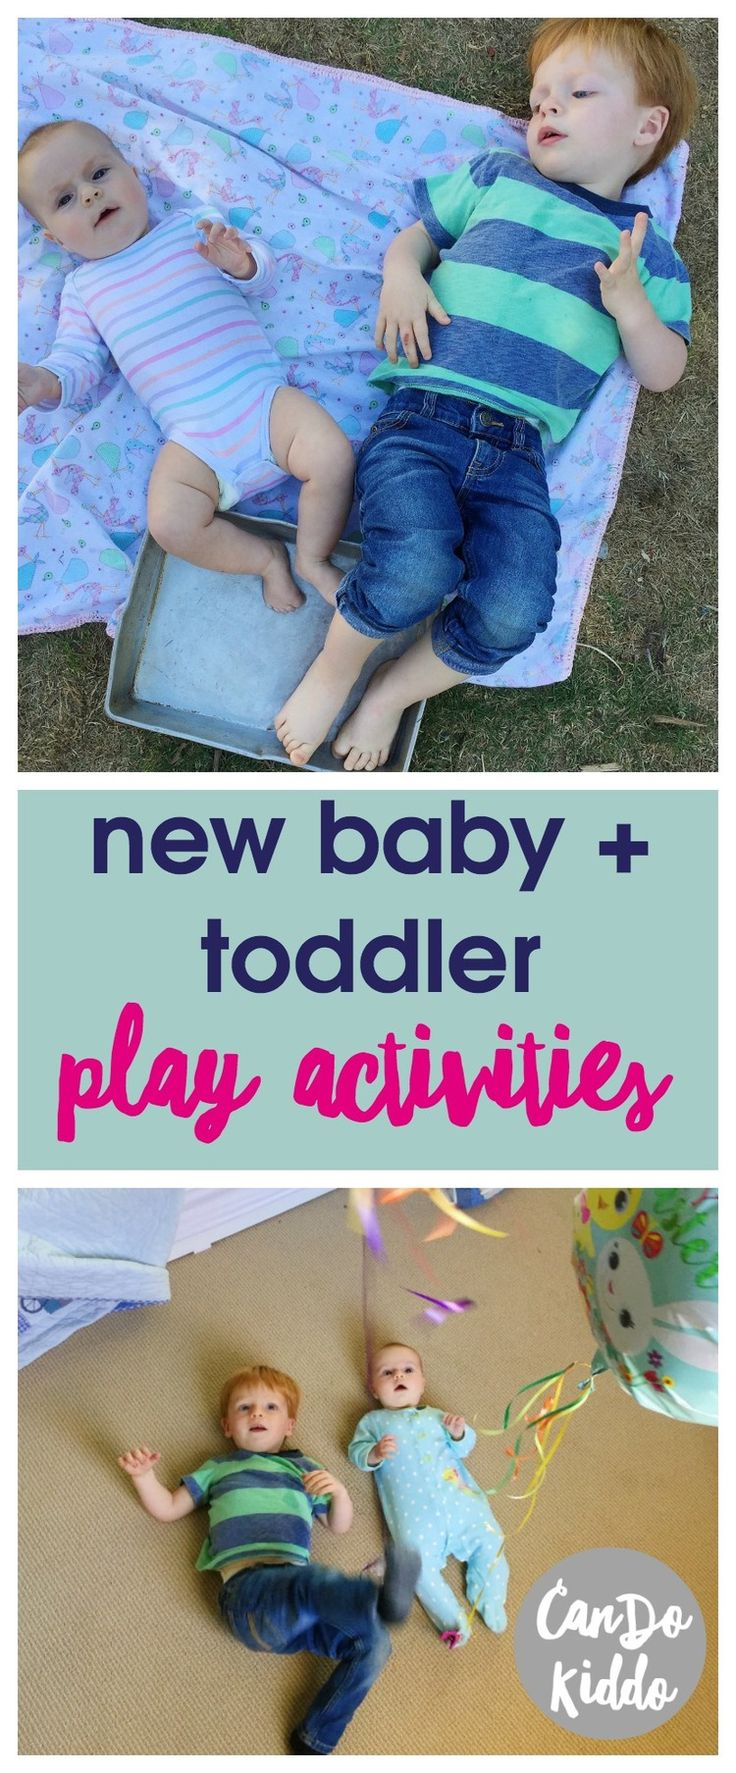 Sibling play ideas for new baby and toddler. www.CanDoKiddo.com